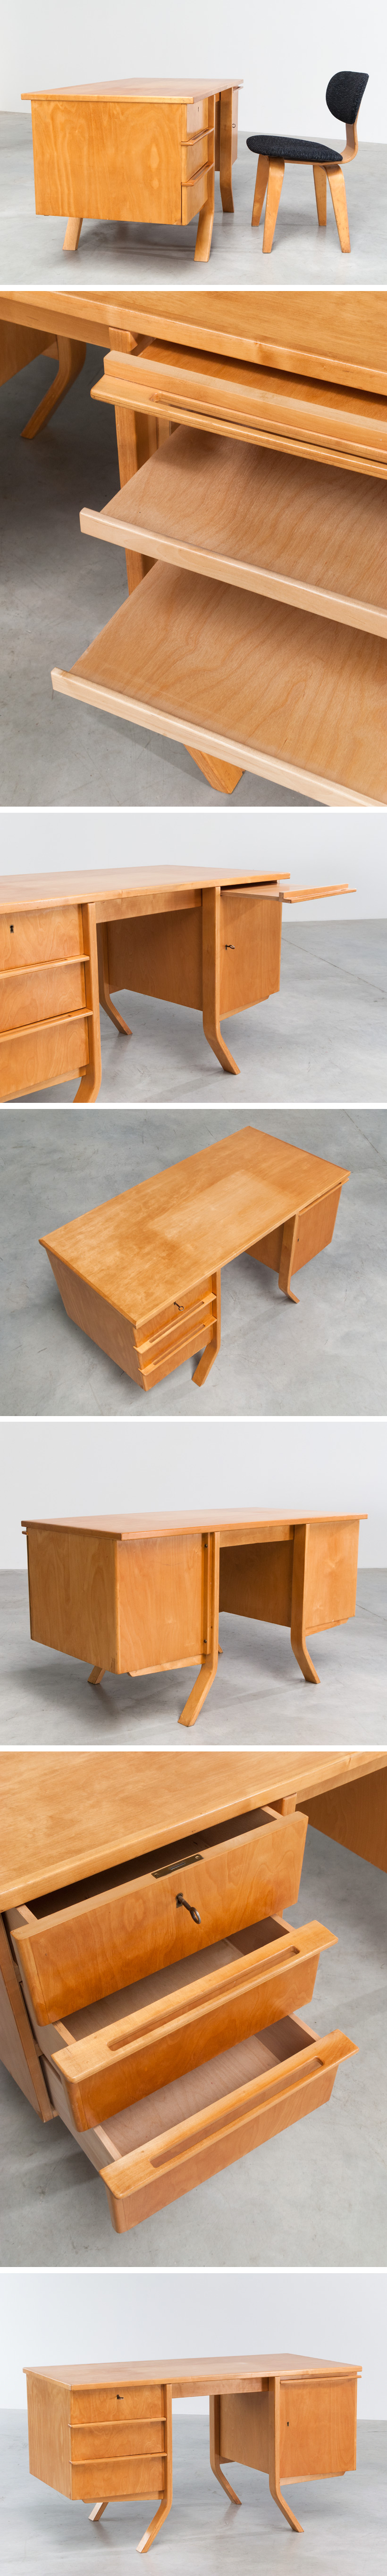 Cees Braakman Birch wood office desk UMS Pastoe Utrecht Large